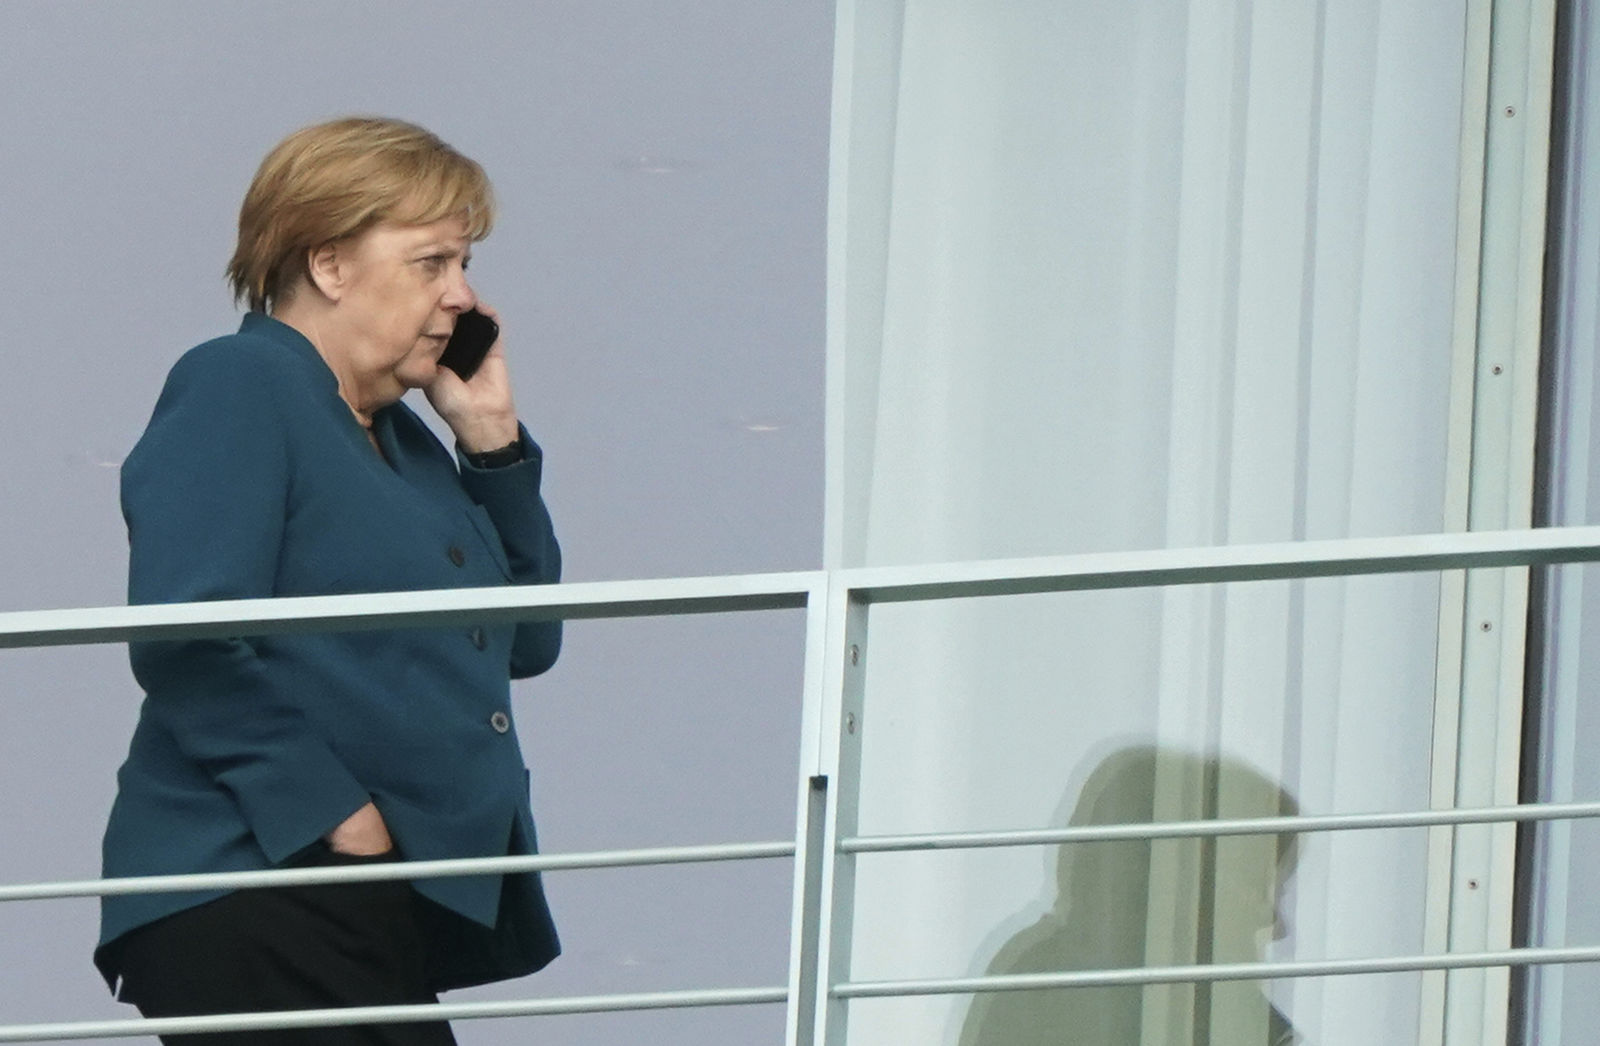 German Chancellor Angela Merkel makes a telephone call on a balcony of the Chacellery in Berlin, Germany, Friday, Sept. 20, 2019.{ } (Kay Nietfeld/dpa via AP)